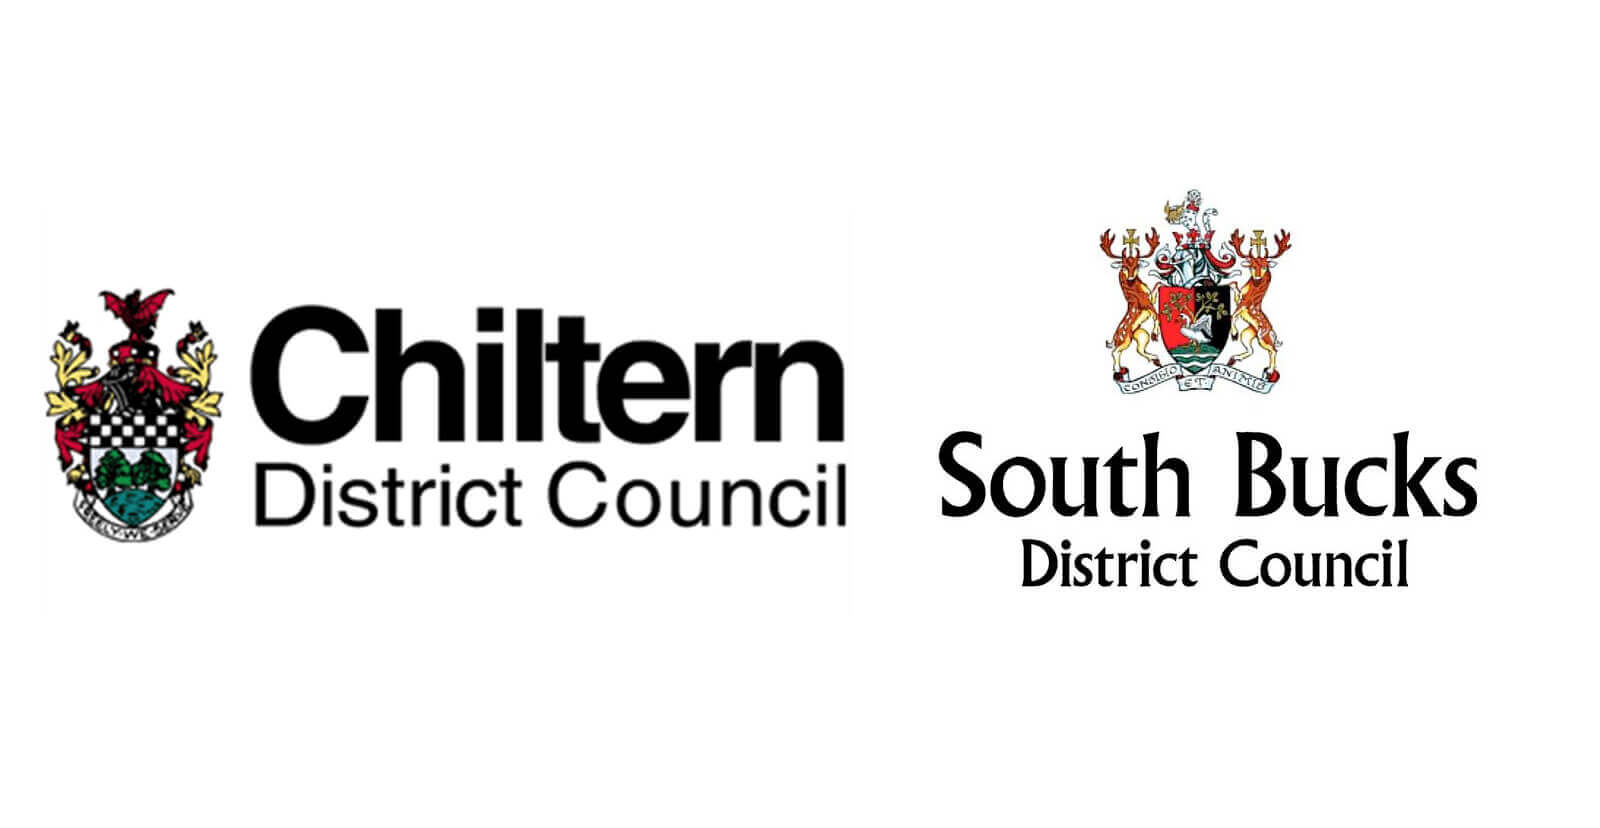 Chiltern & South Bucks District Councils